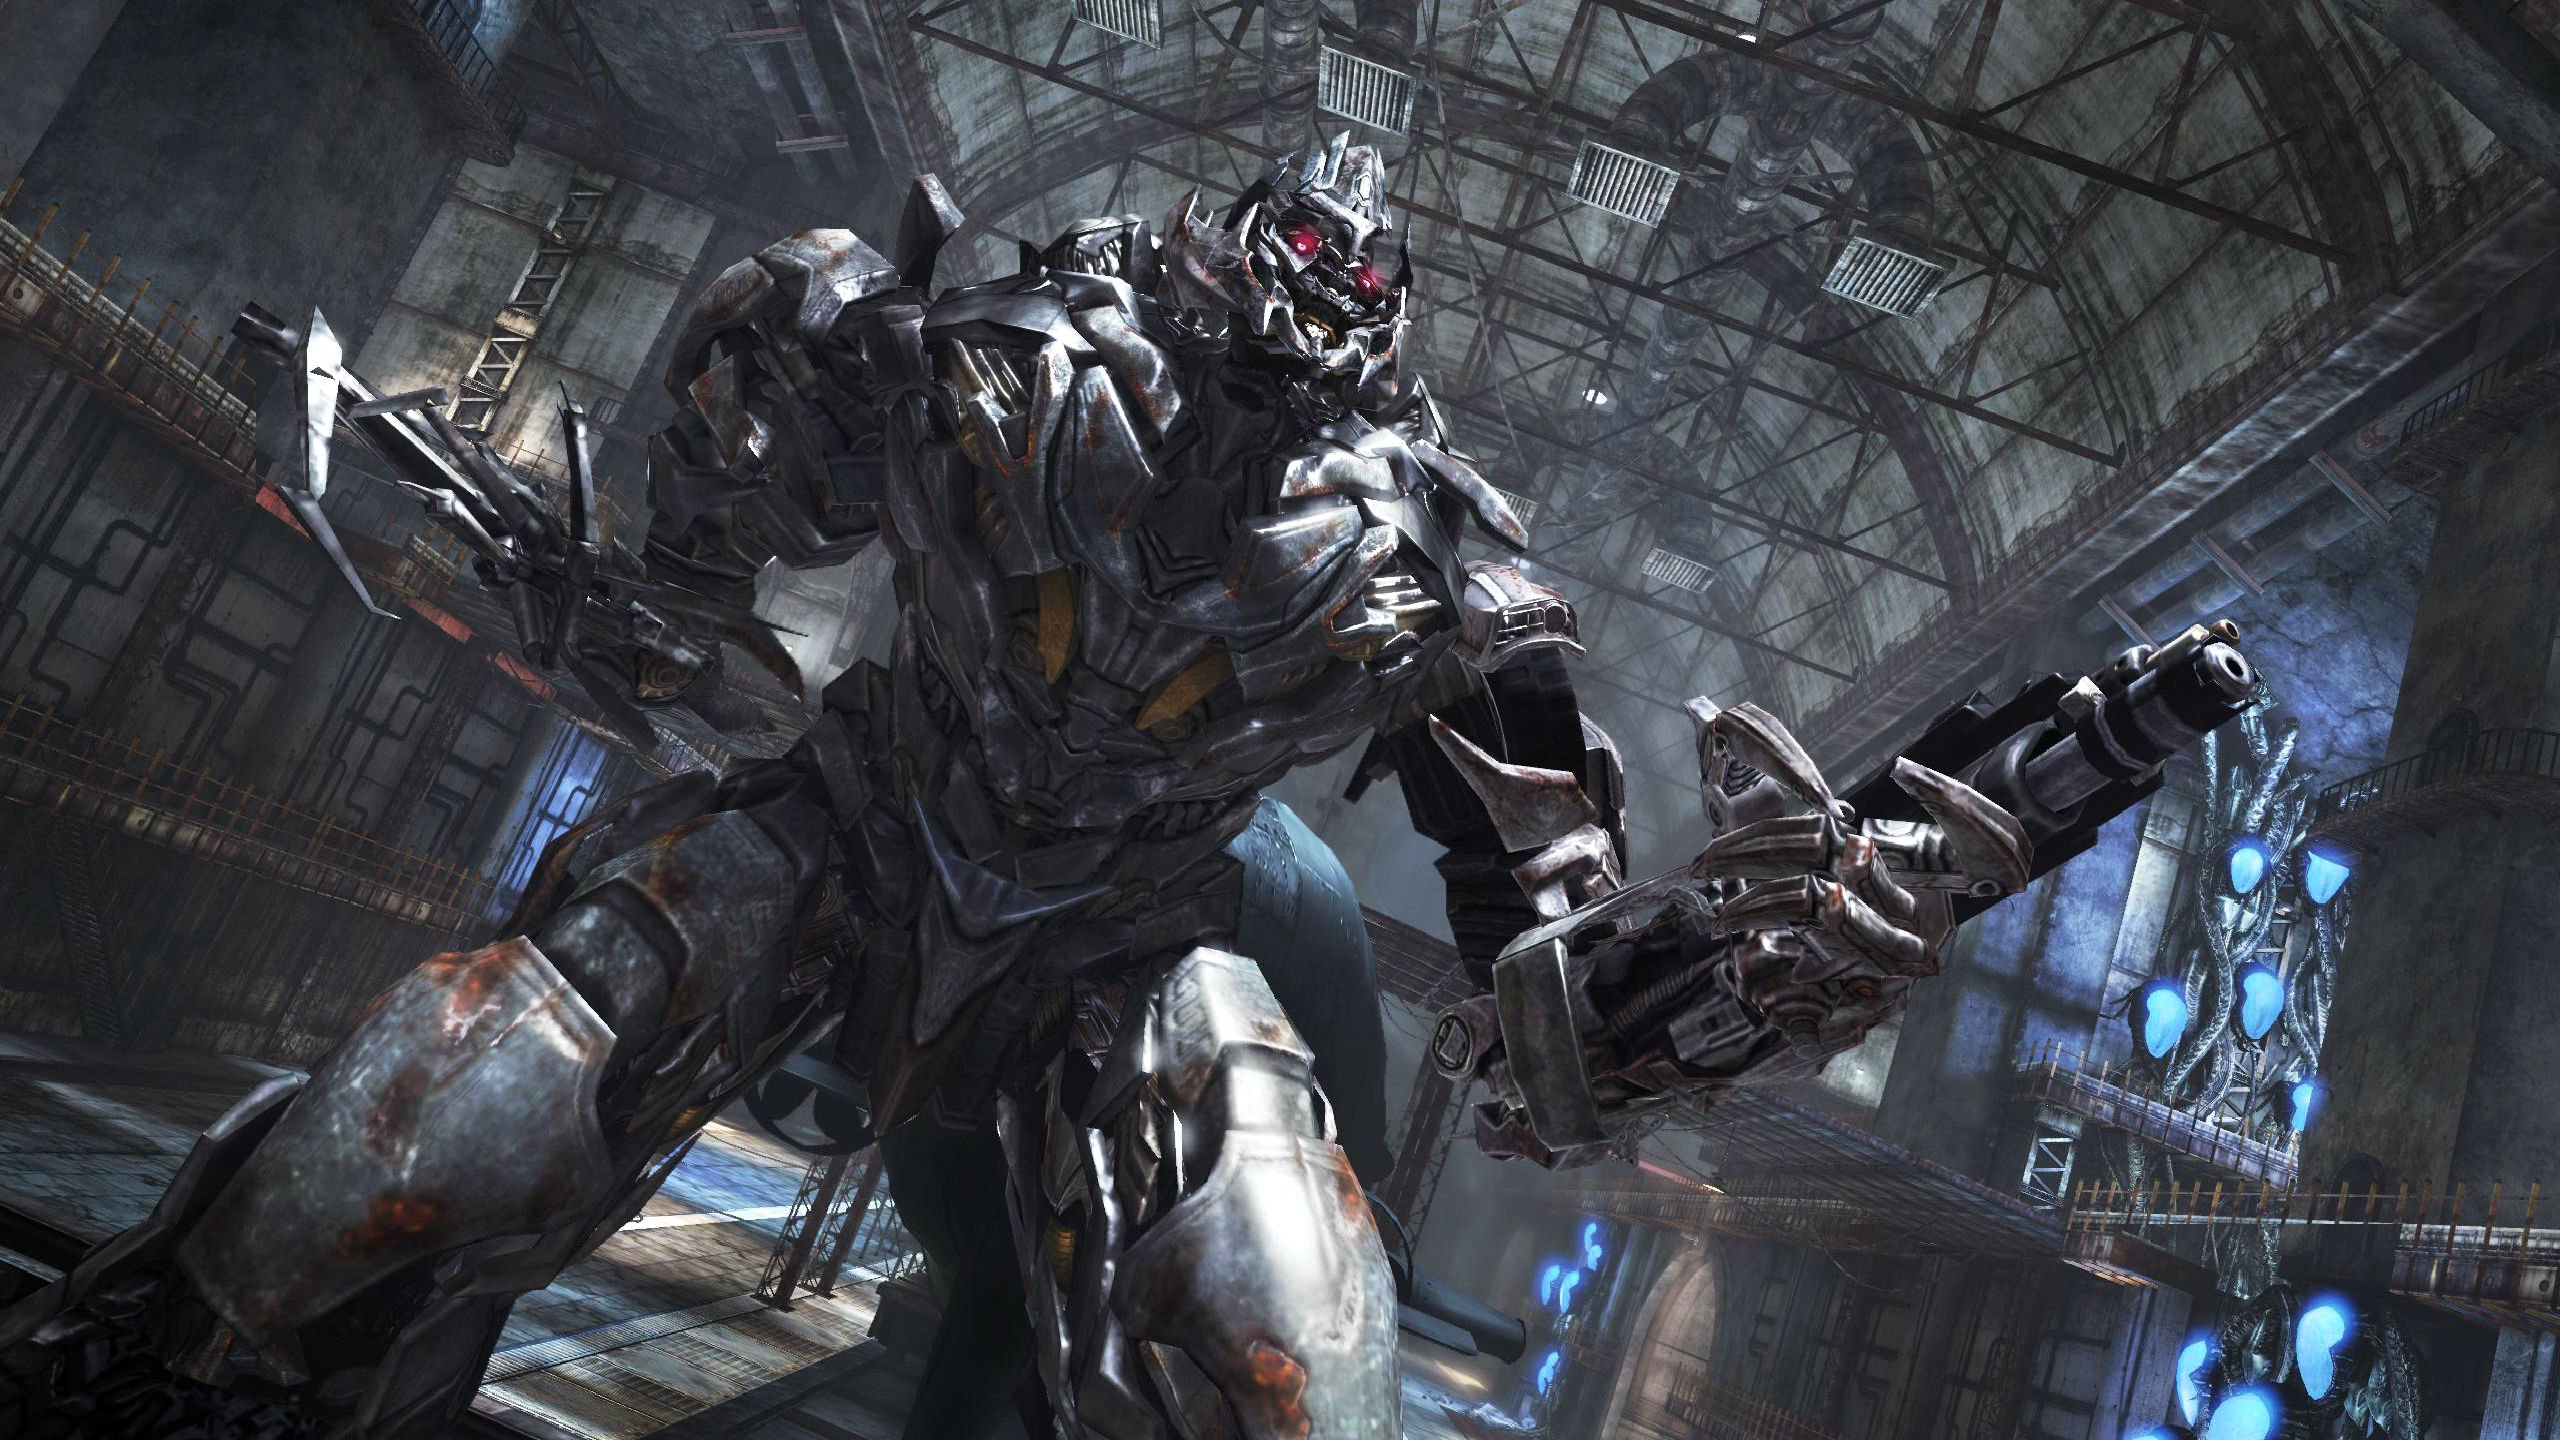 Sci Fi Transformer : Transformers universe sci fi mmo action fighting tactical